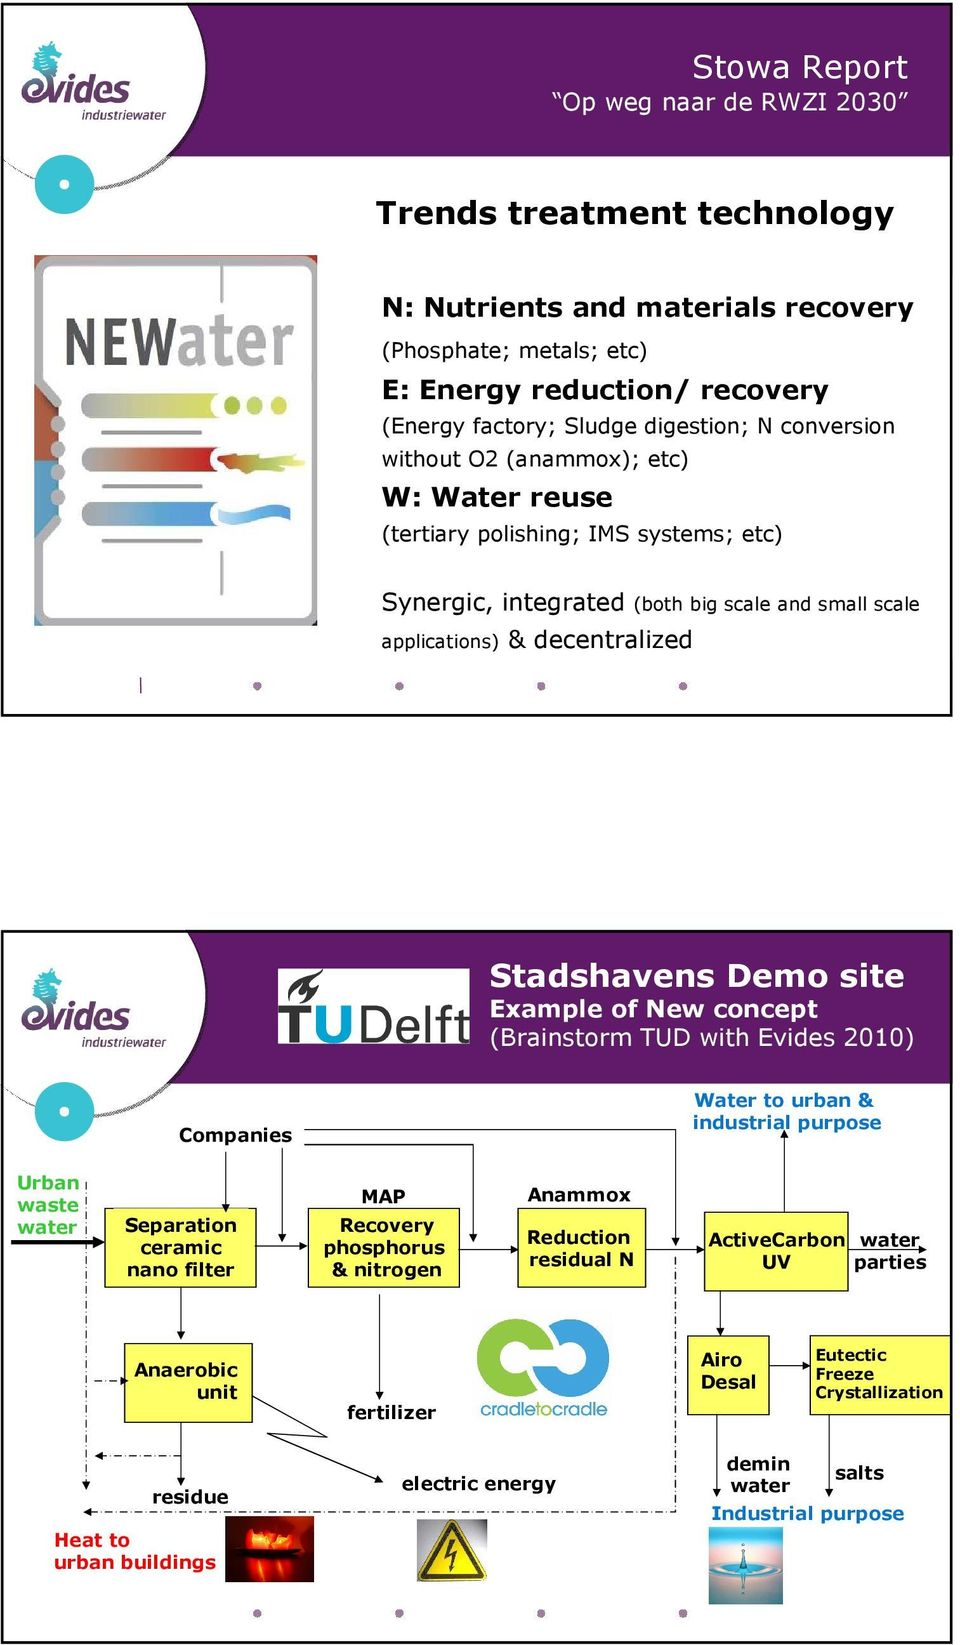 Demo site Example of New concept (Brainstorm TUD with Evides 2010) Companies Water to urban & industrial purpose Urban waste Separation ceramic nano filter MAP Recovery phosphorus & nitrogen